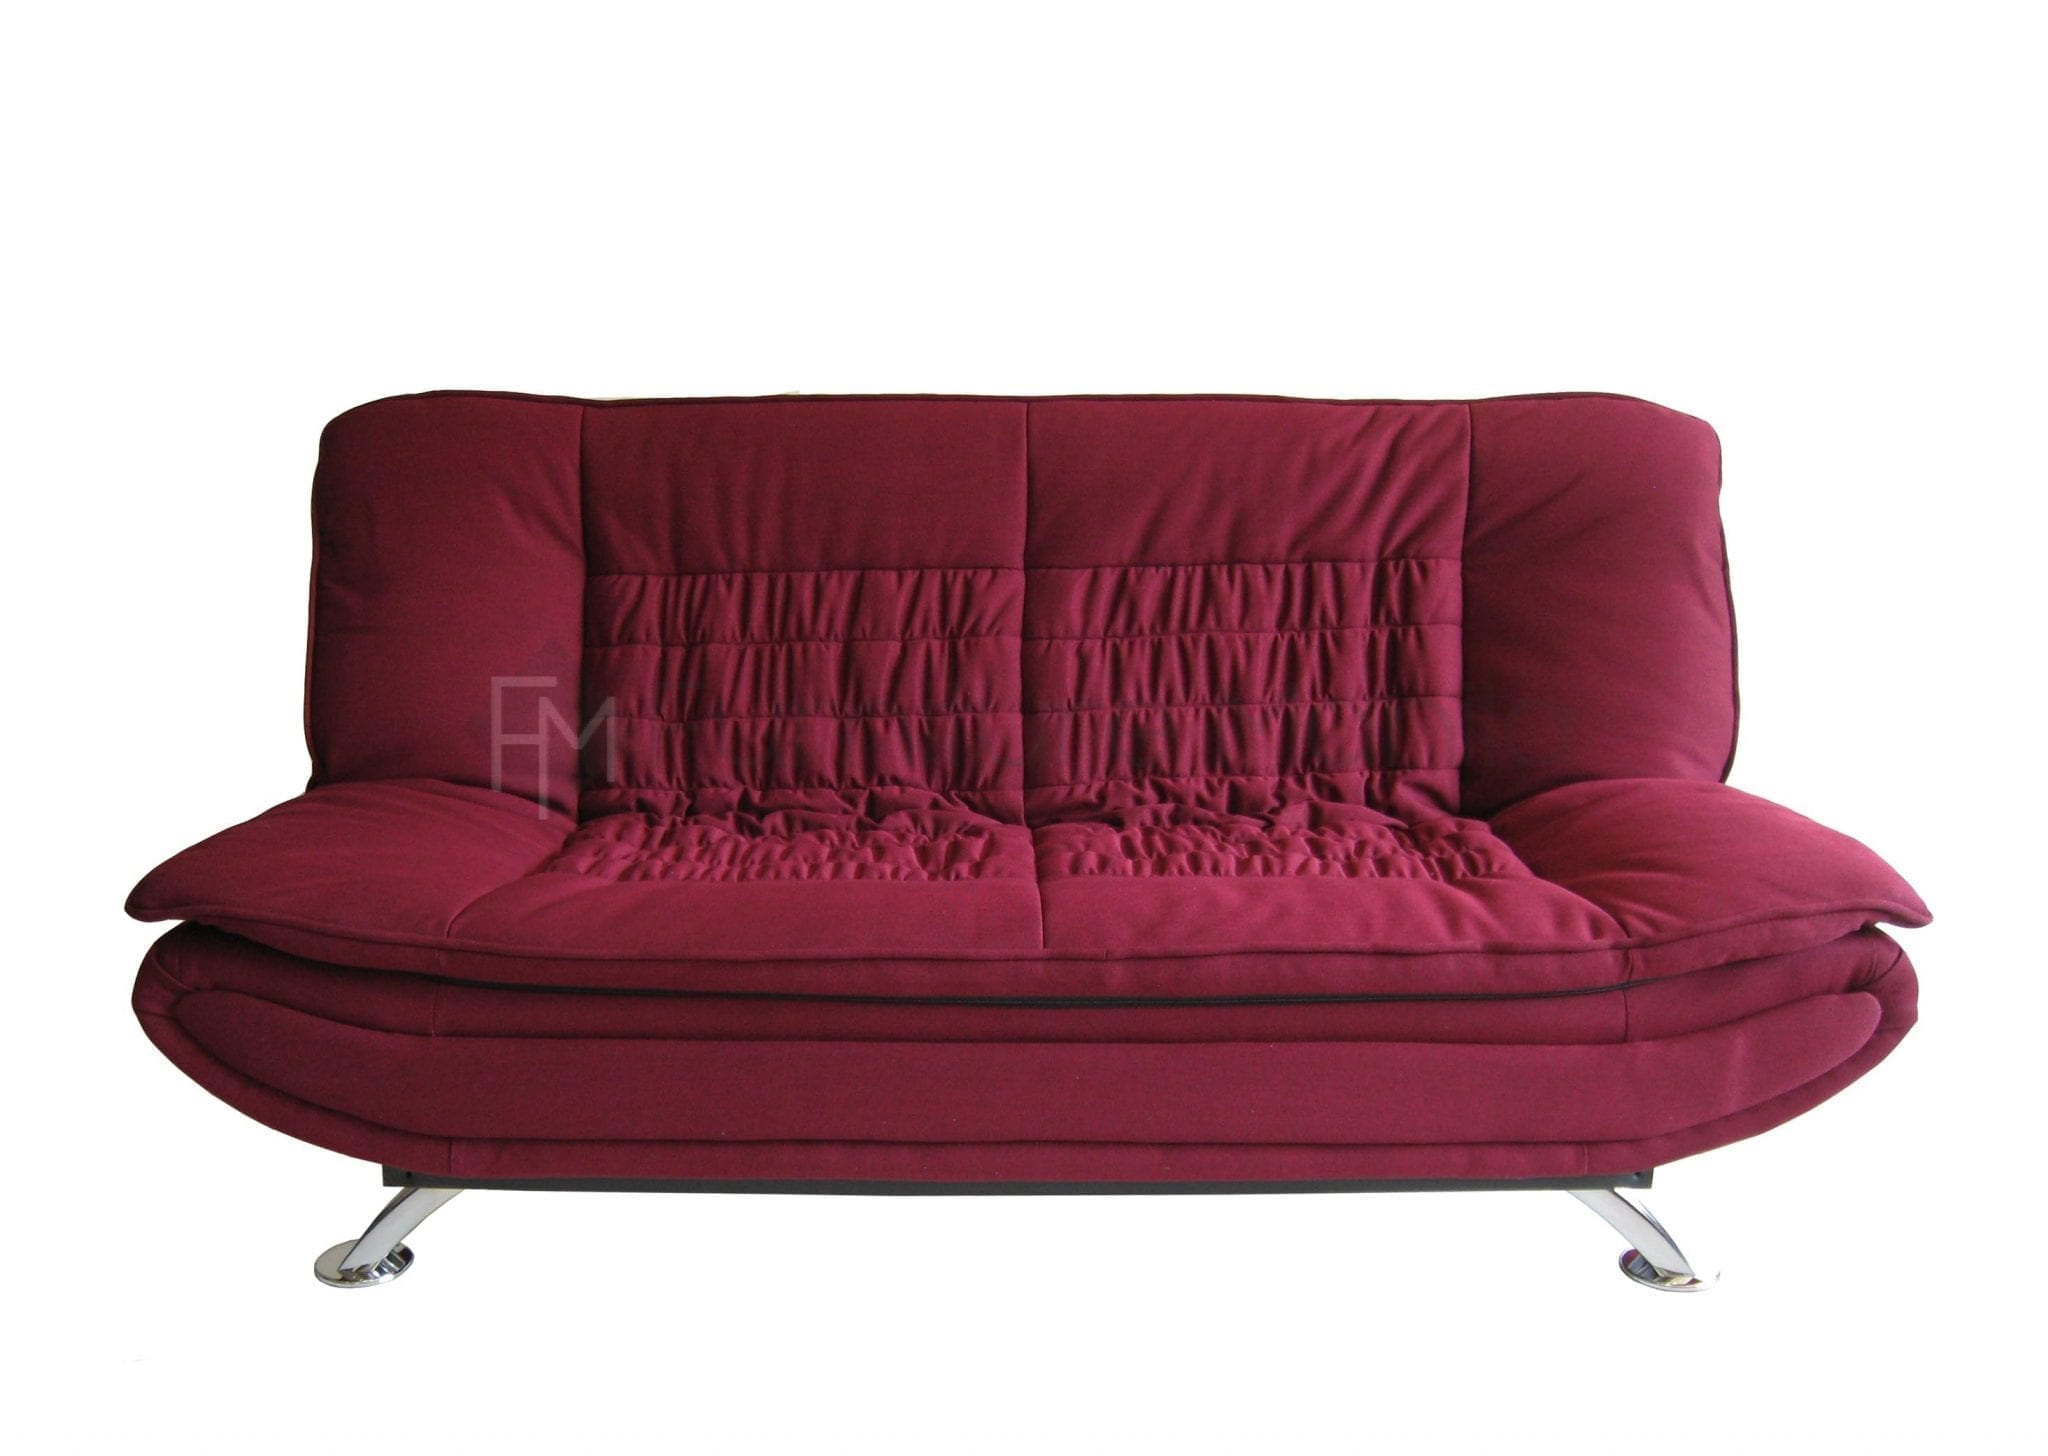 Avino adelaide sofa bed home office furniture philippines for Sofa bed in philippines